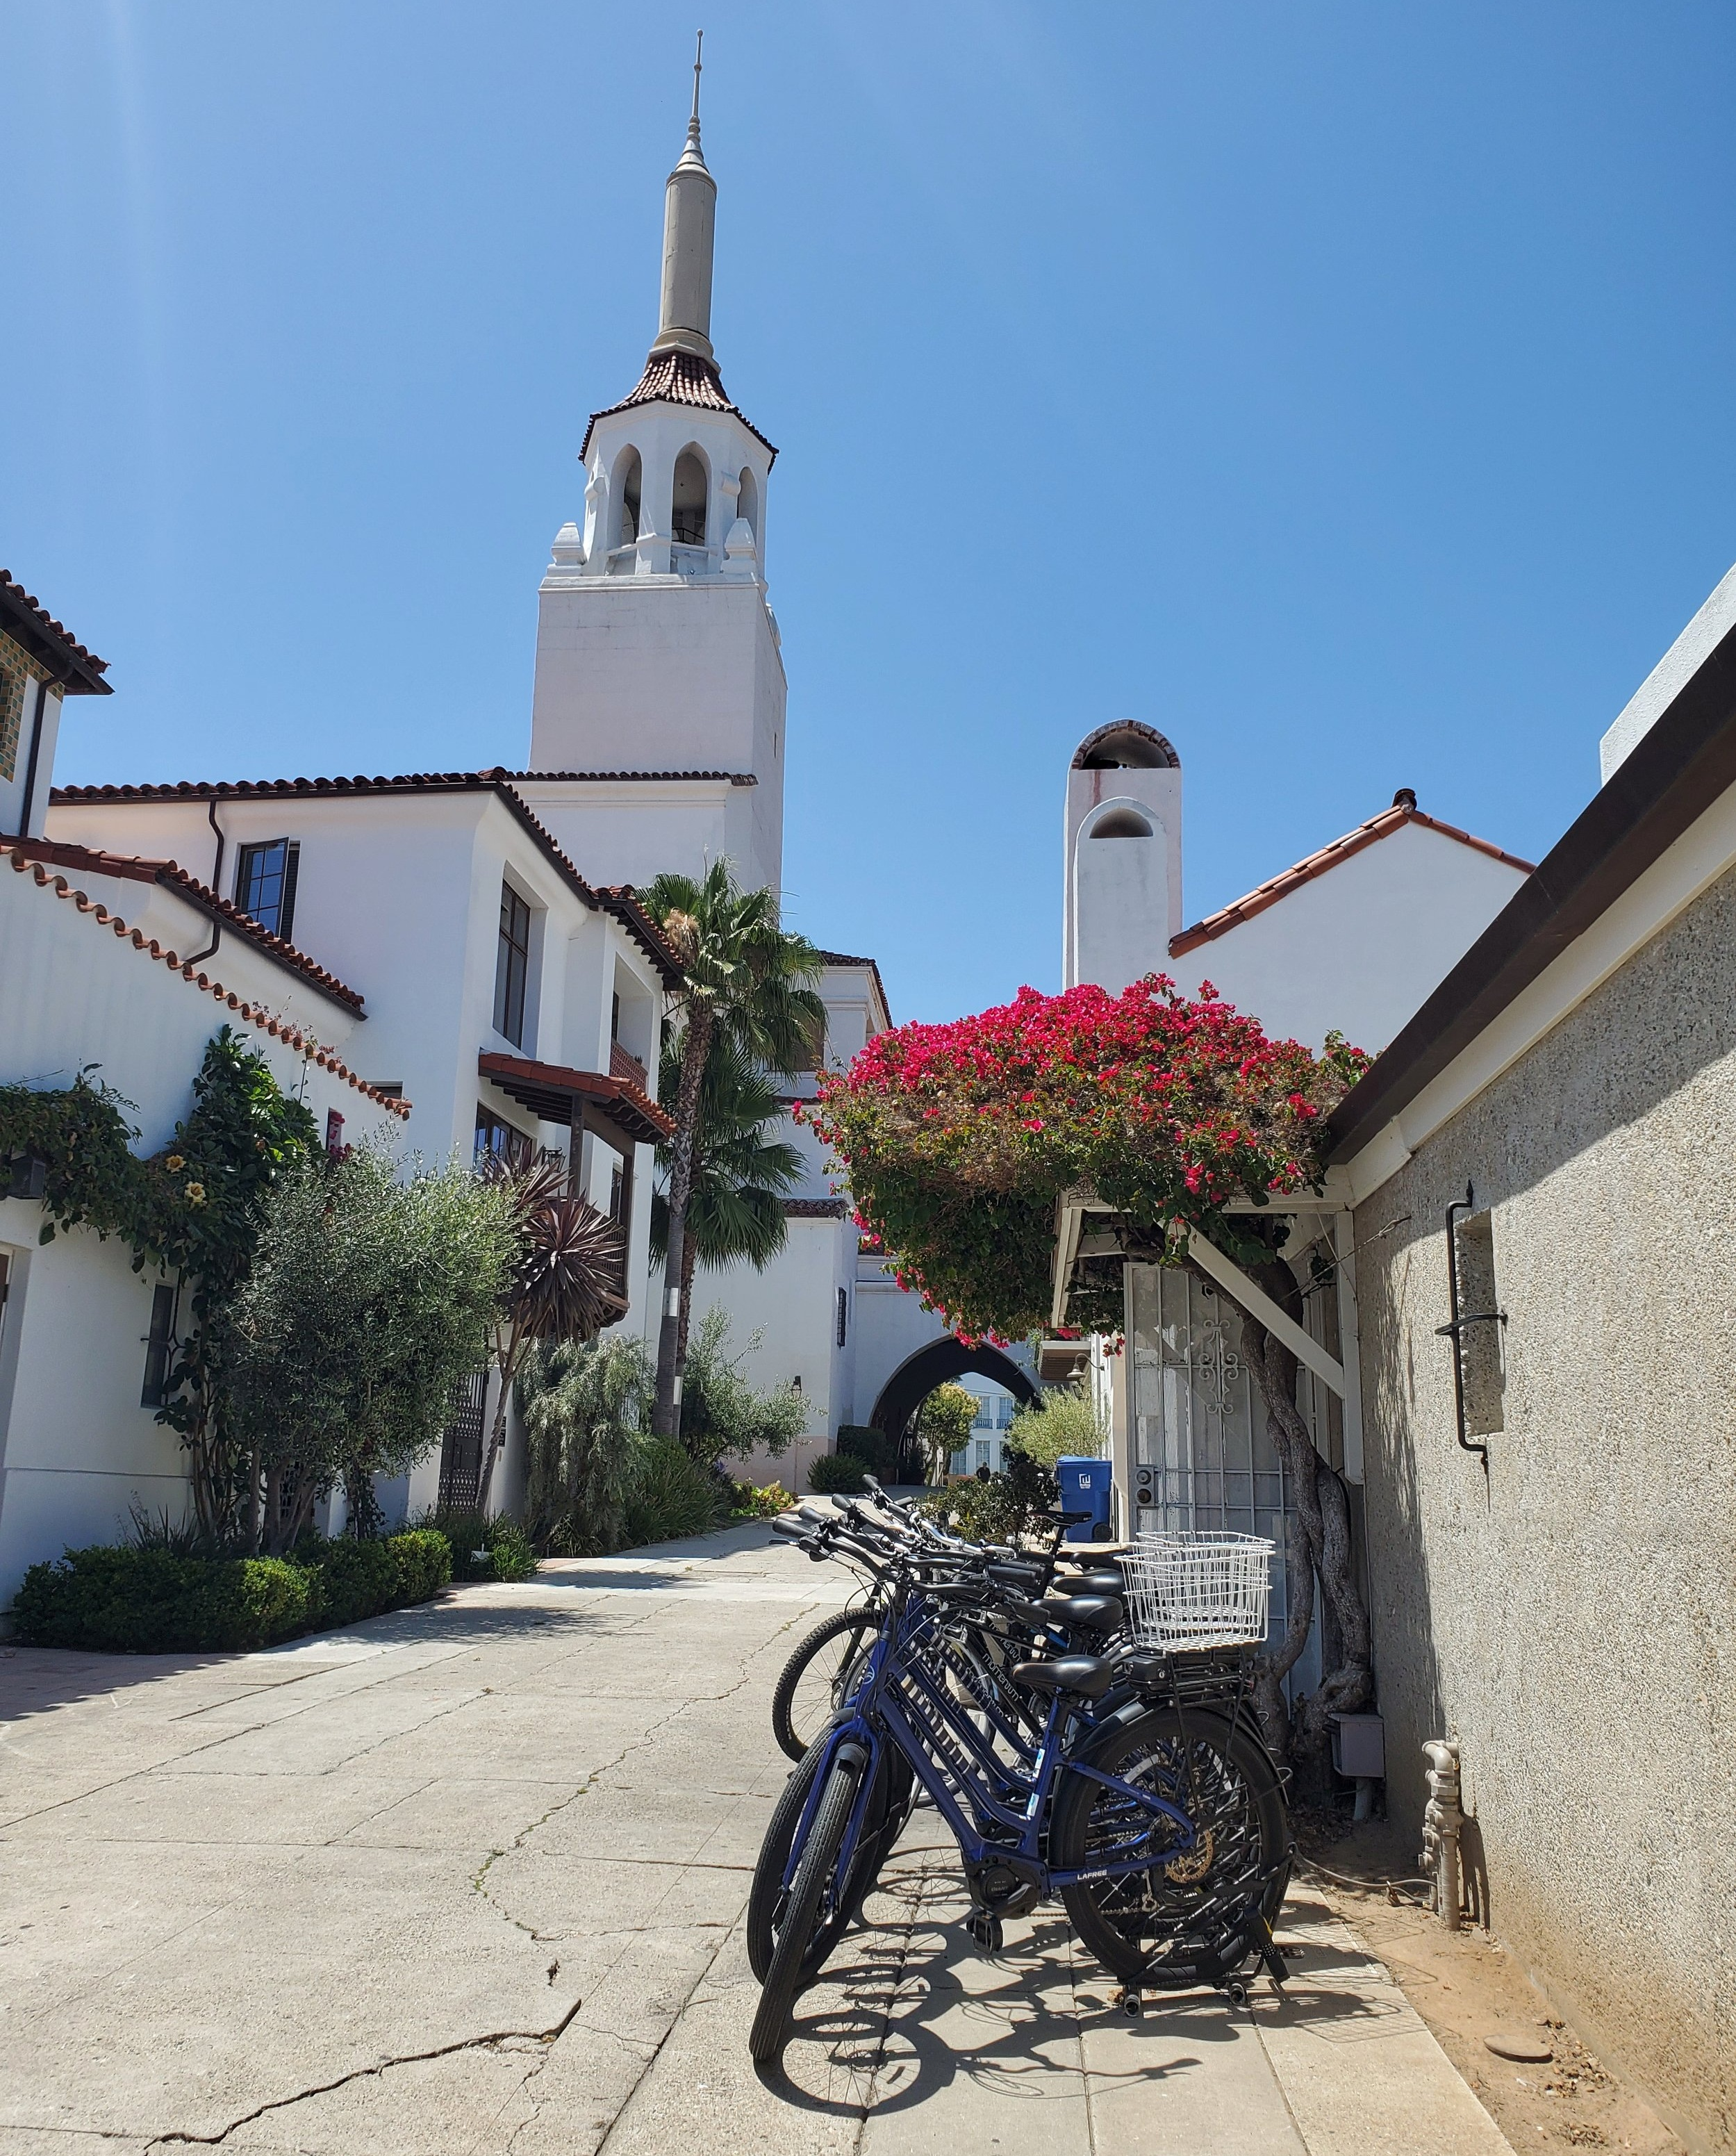 On the way to the Public Market. Santa Barbara is full of cute corners and photo options!